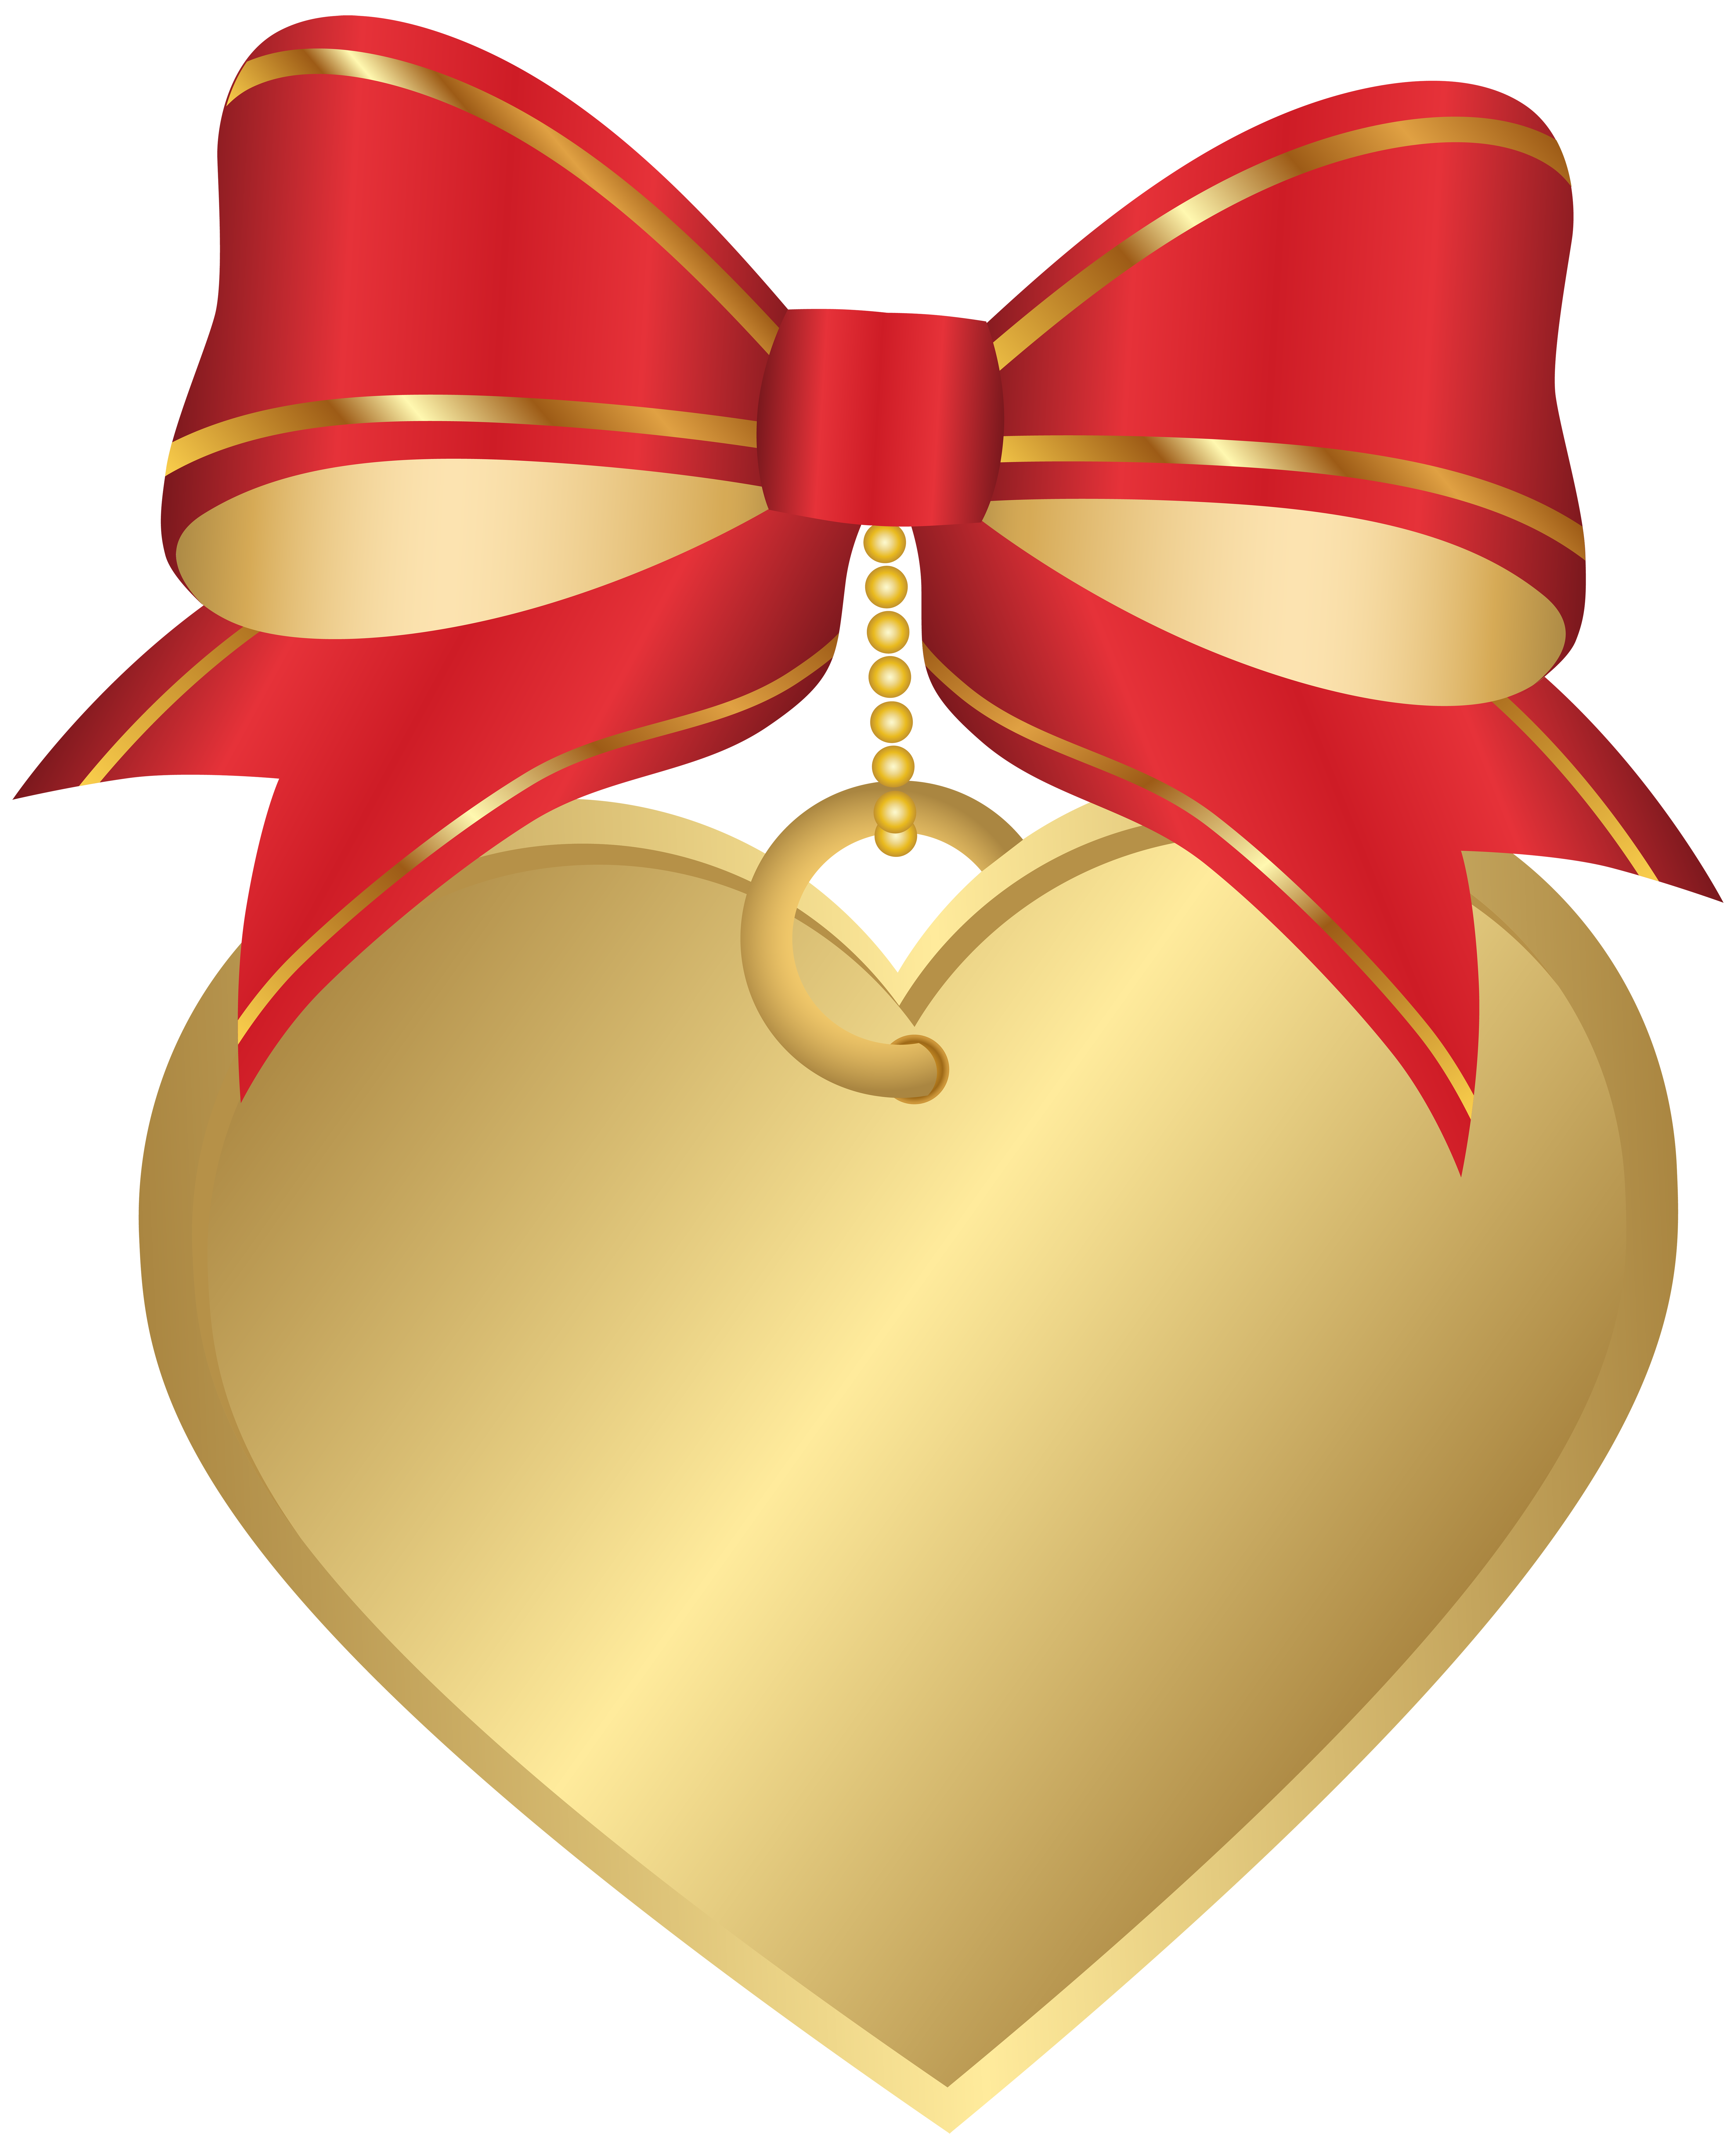 Gold with red bow. Piano clipart heart